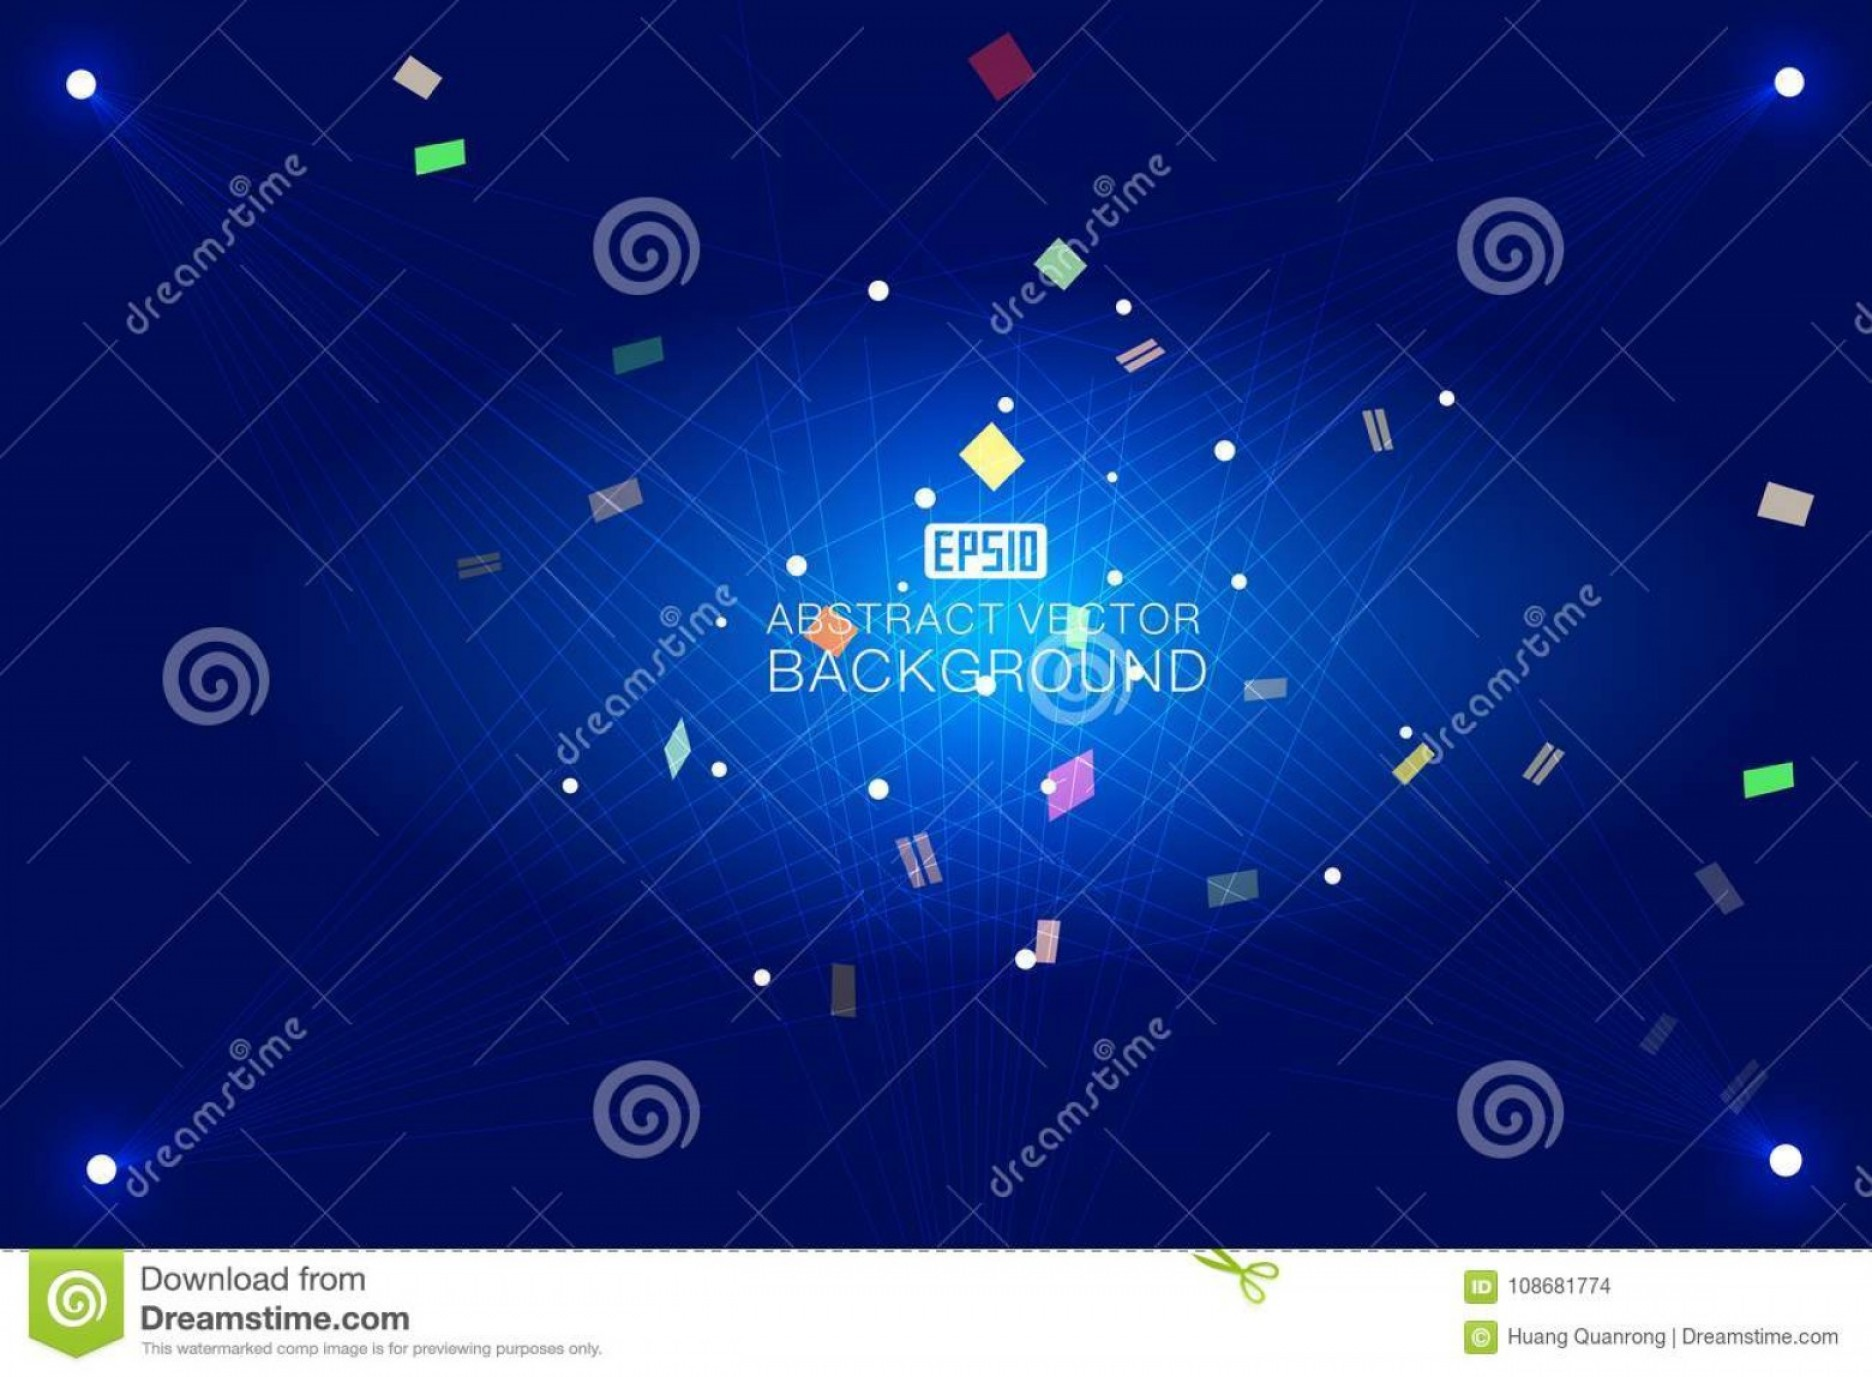 Blue Technology Vector Illustration: Dots Line Abstract Dark Blue Tech Vector Background Image